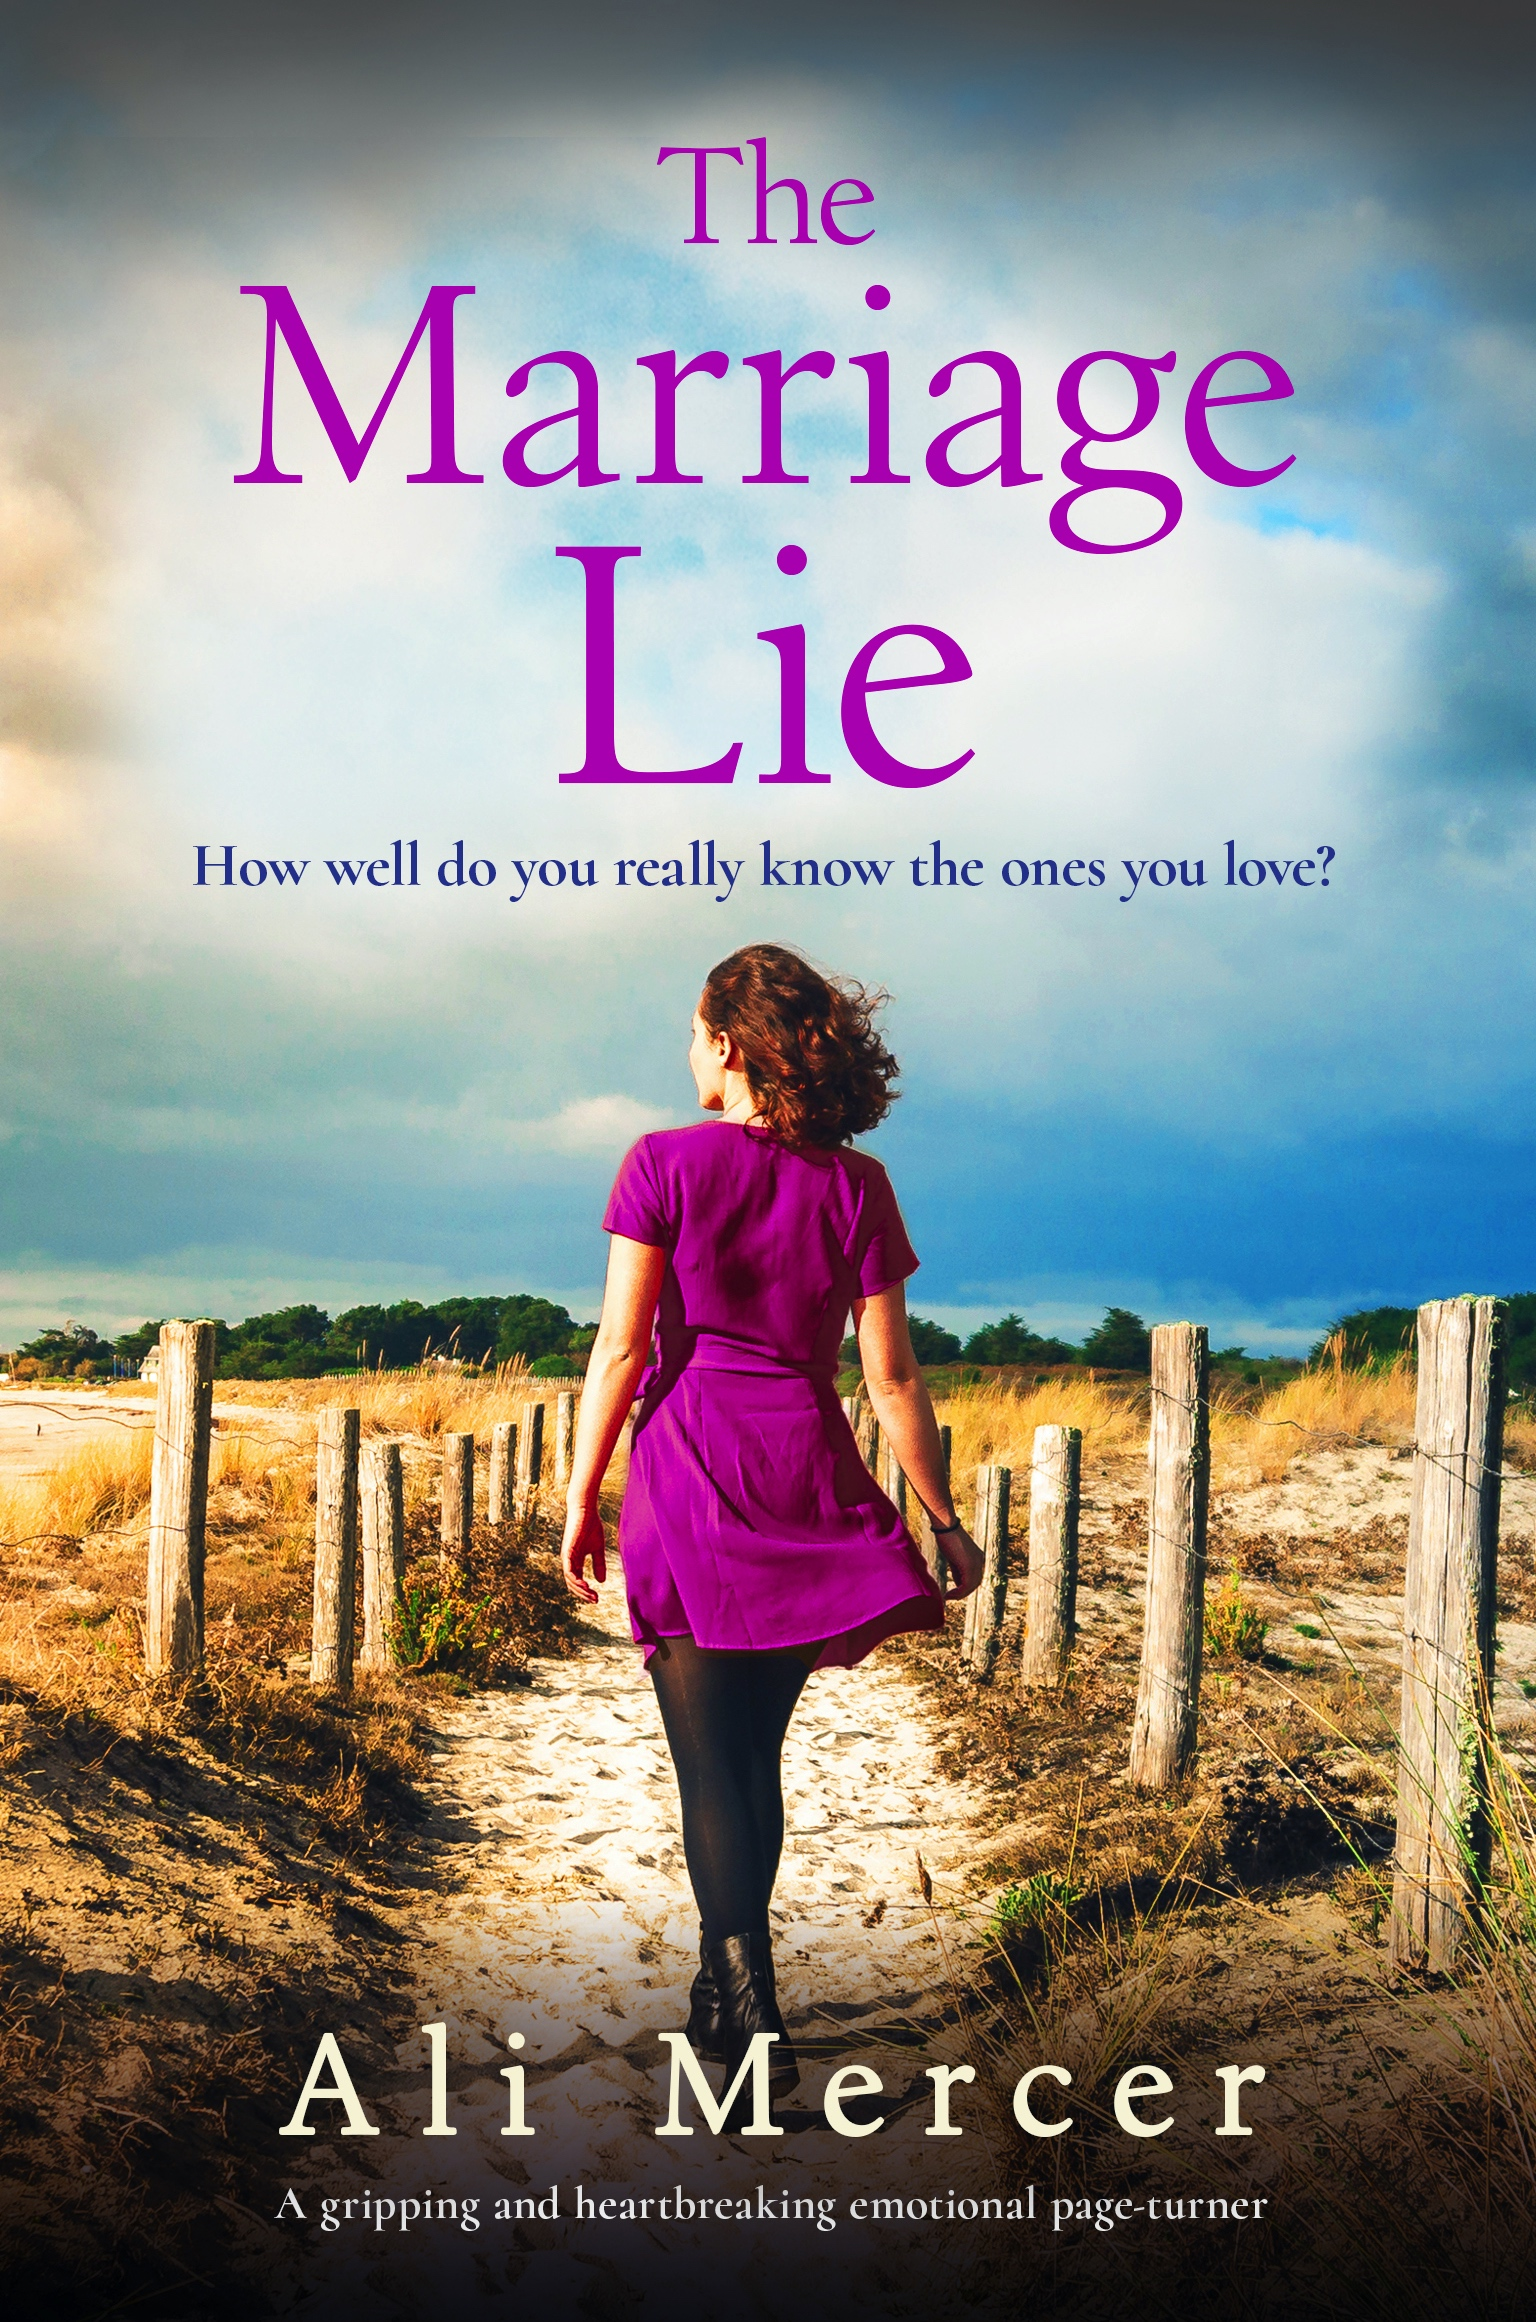 The Marriage Lie book cover